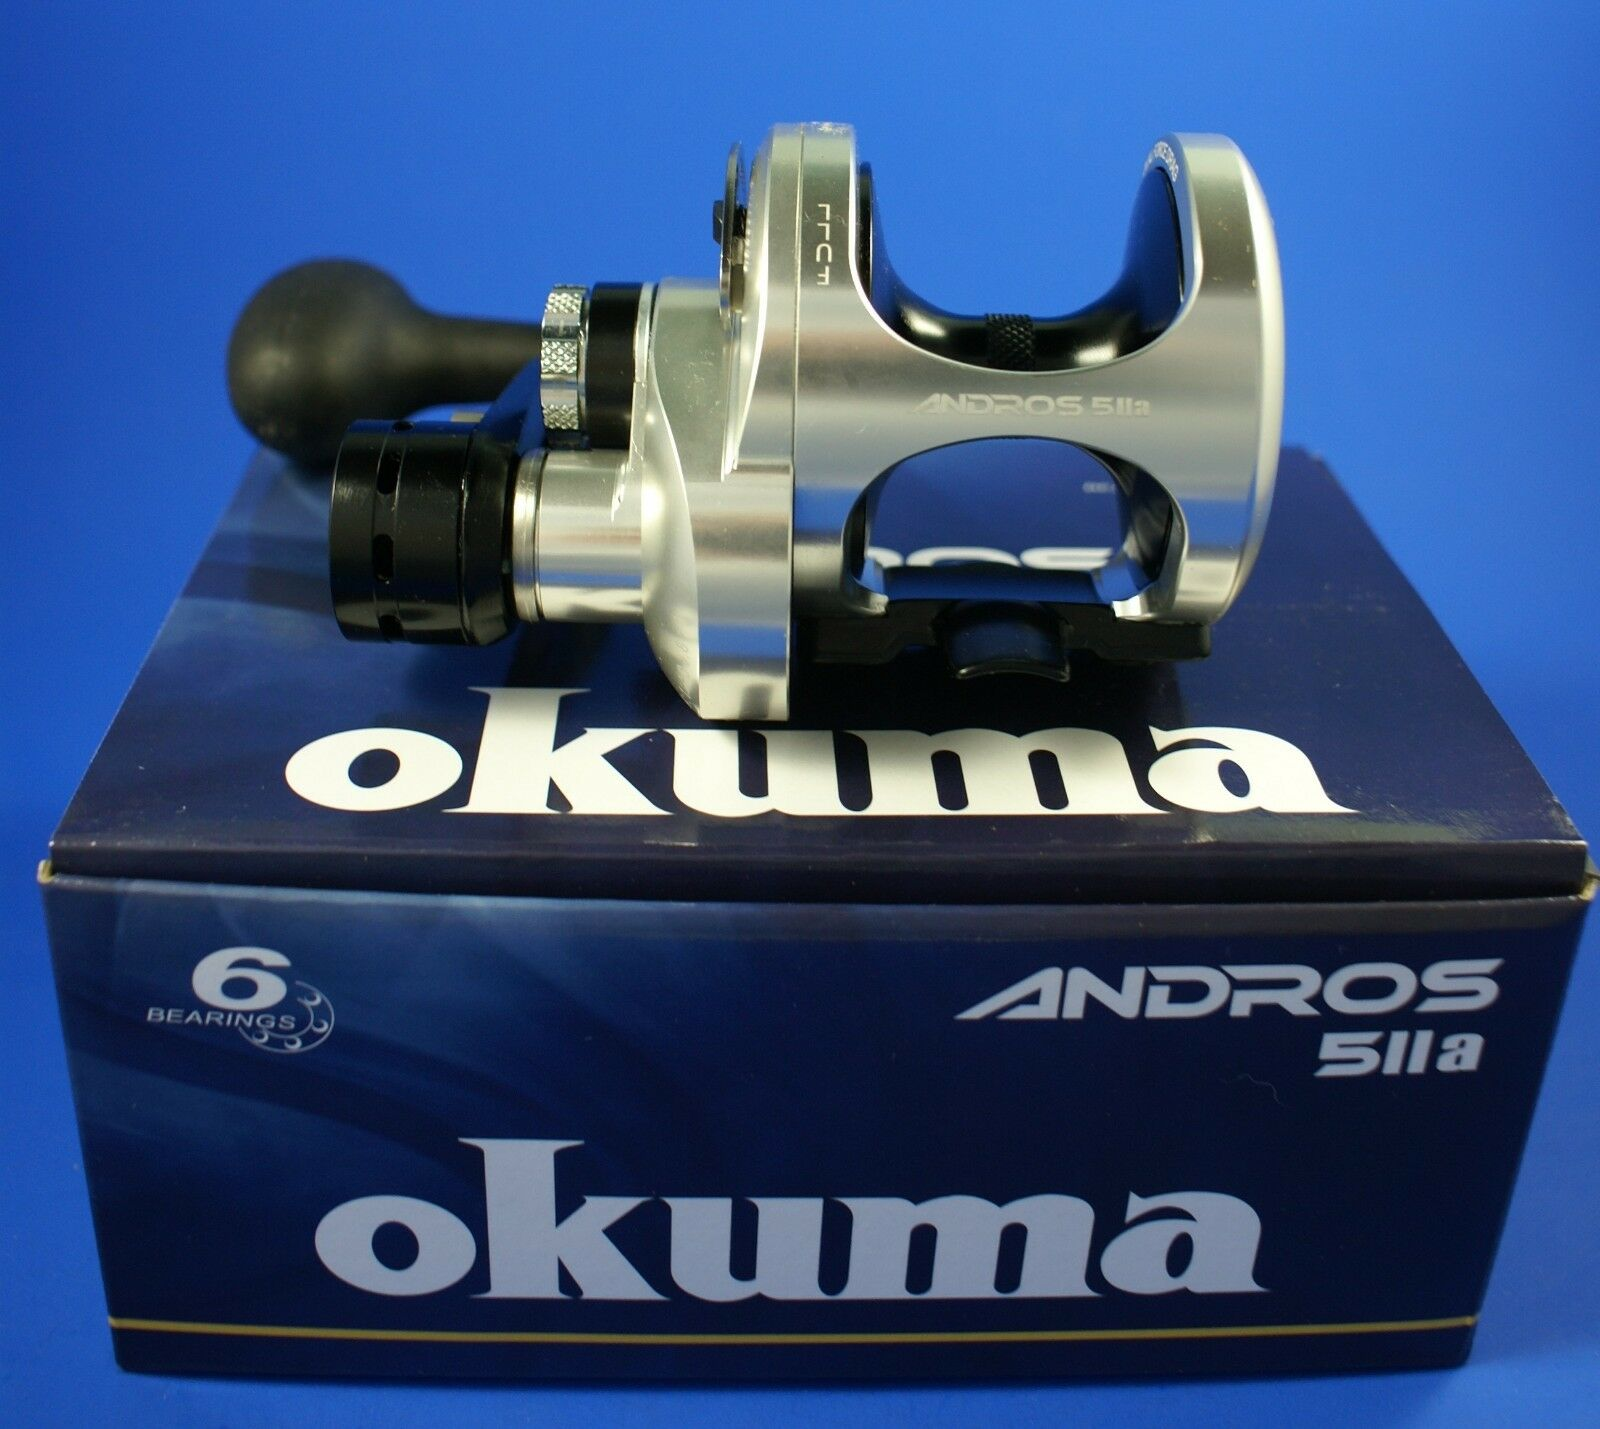 Okuma Andros A-5IIa 2 Speed Lever Drag Fishing Reel